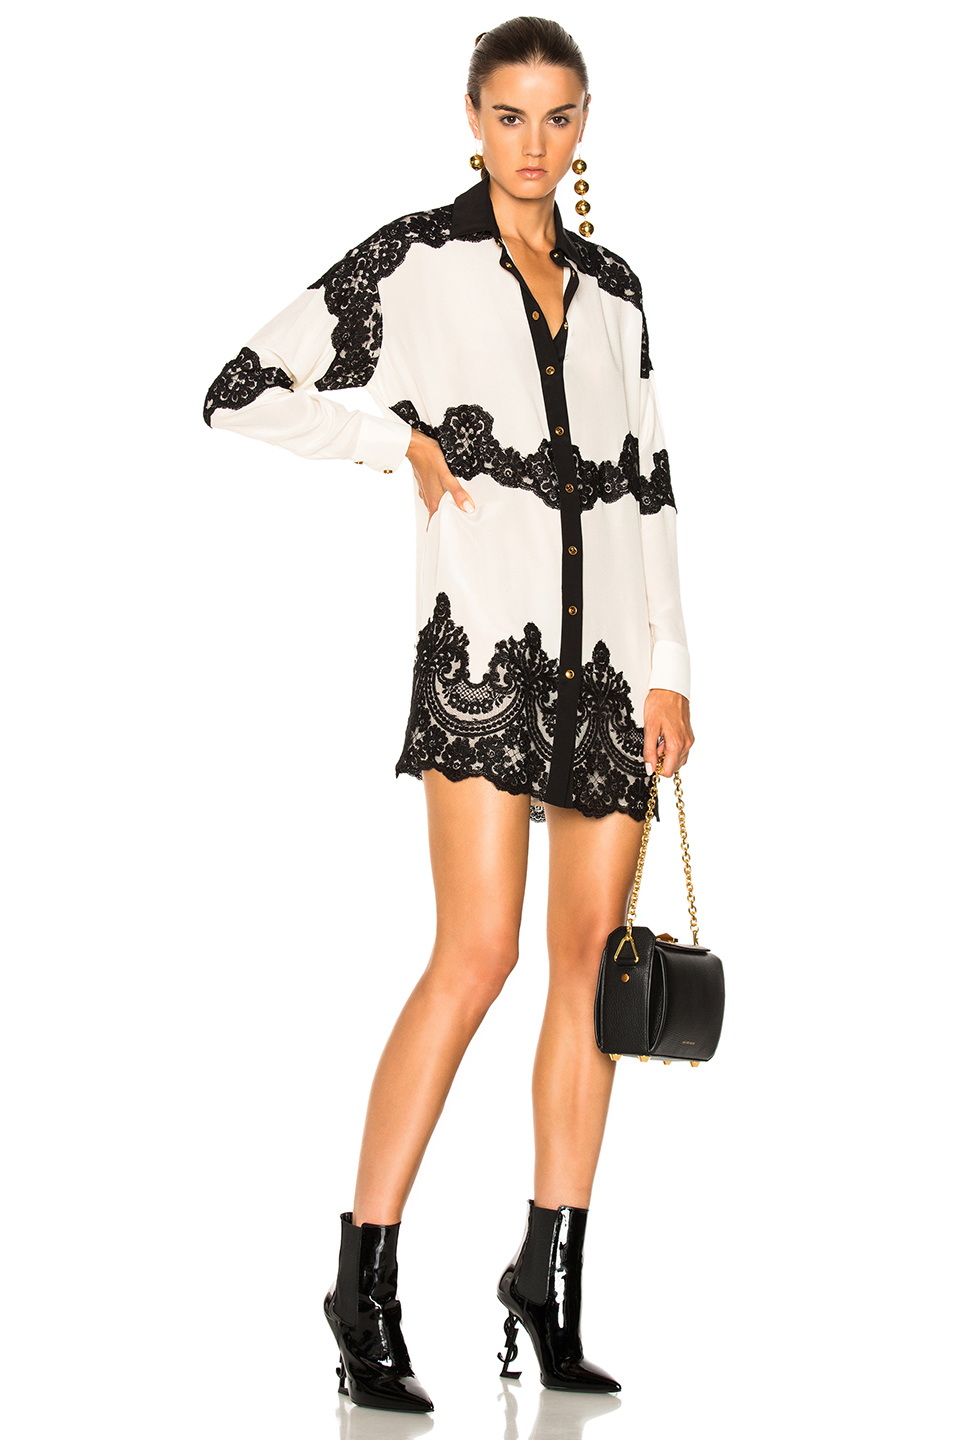 Fausto Puglisi Dress with Lace Detail in Black,Neutrals